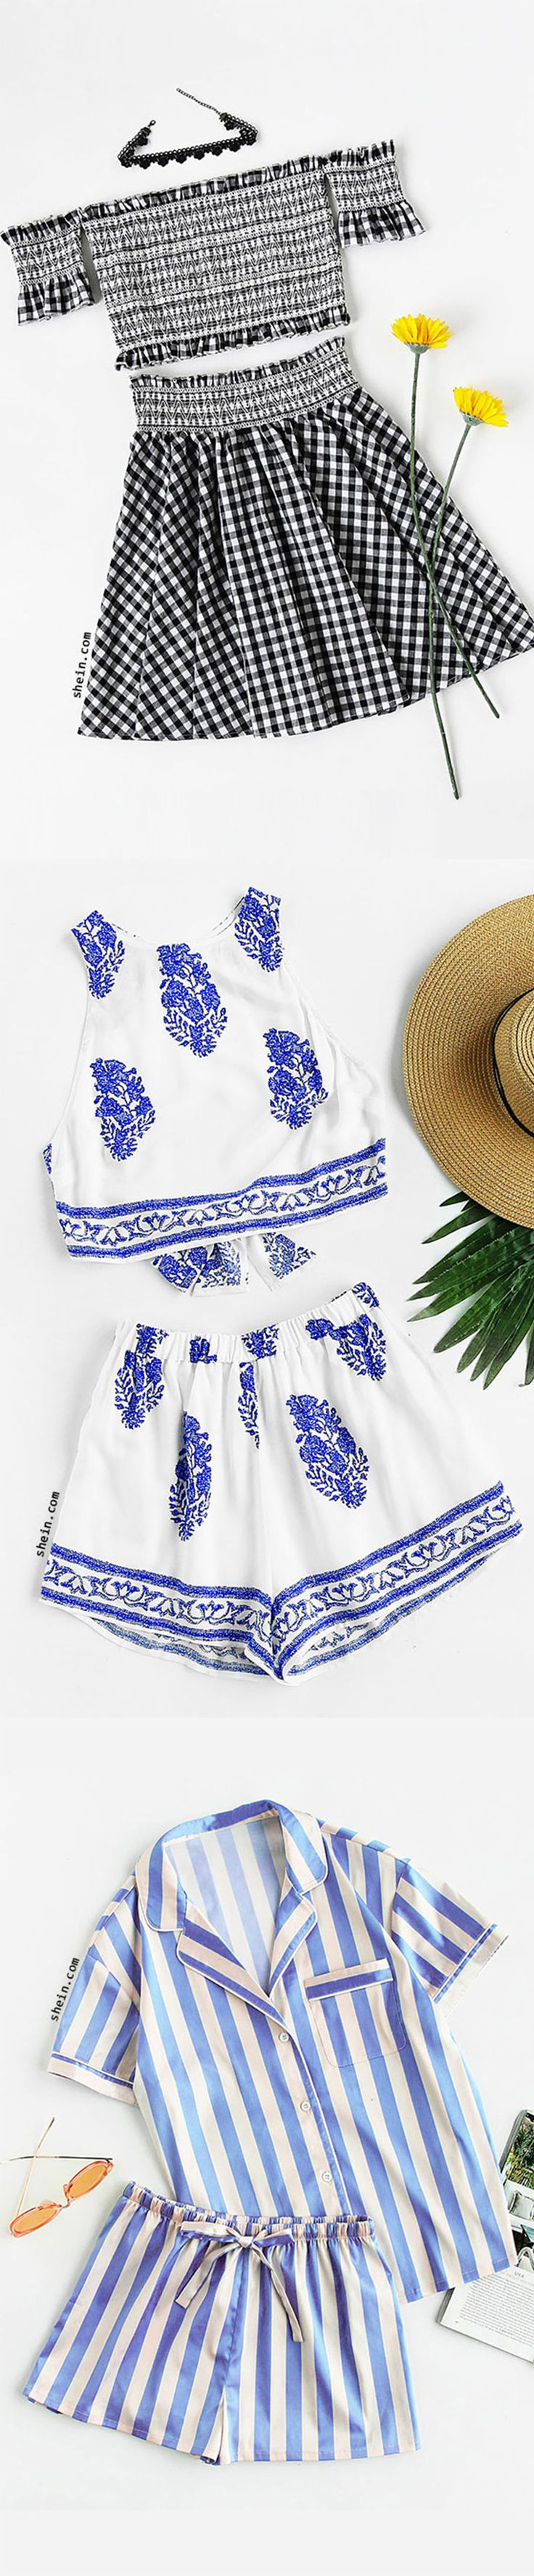 Frilled embroidered smocked bardot top and skirt set & Piping detail pocket front shirt and shorts pajama set & Bow tie open back crop tank yop snd shorts set